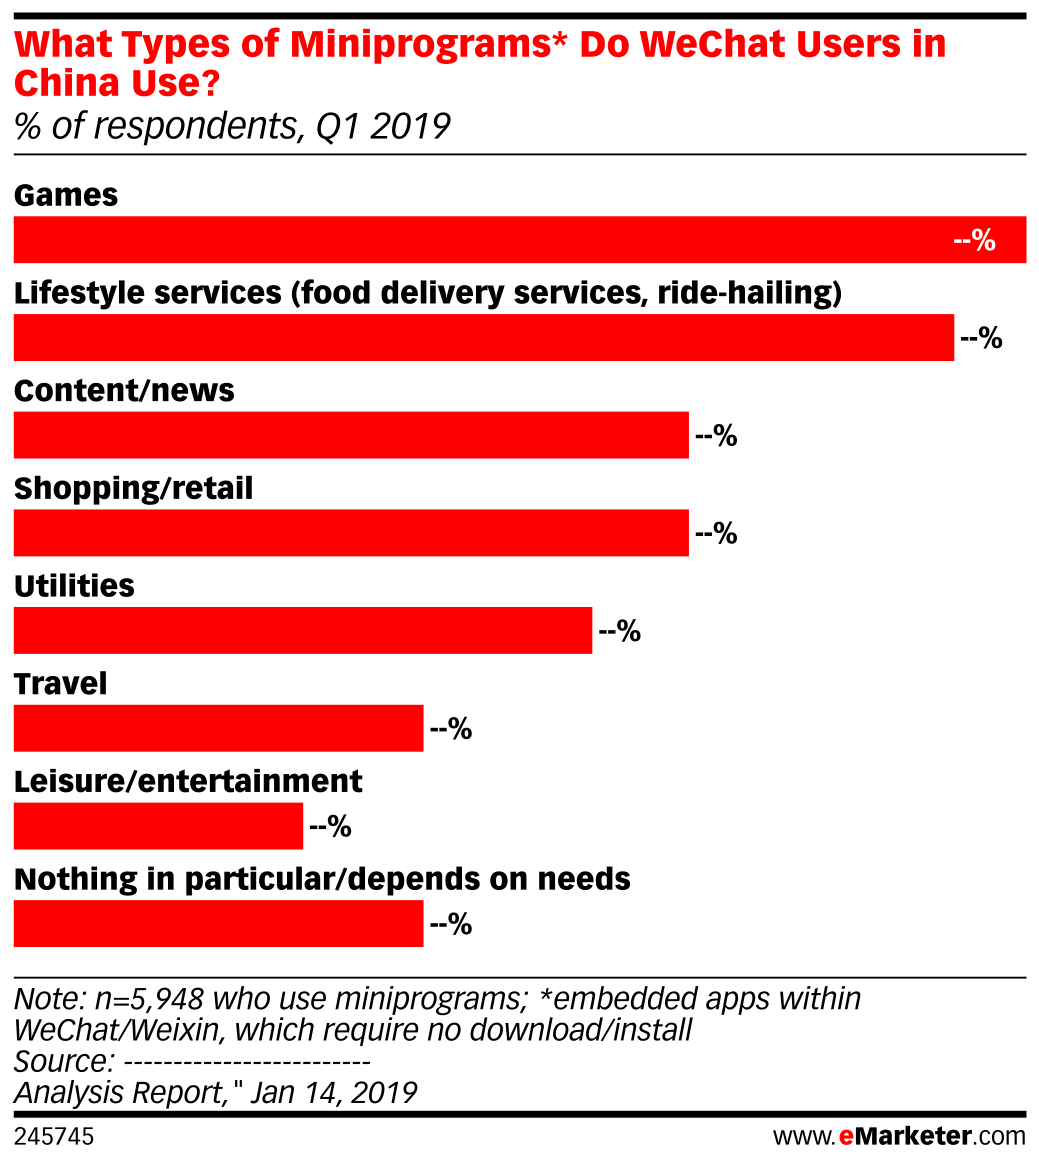 What Types of Miniprograms* Do WeChat Users in China Use? (% of respondents, Q1 2019)